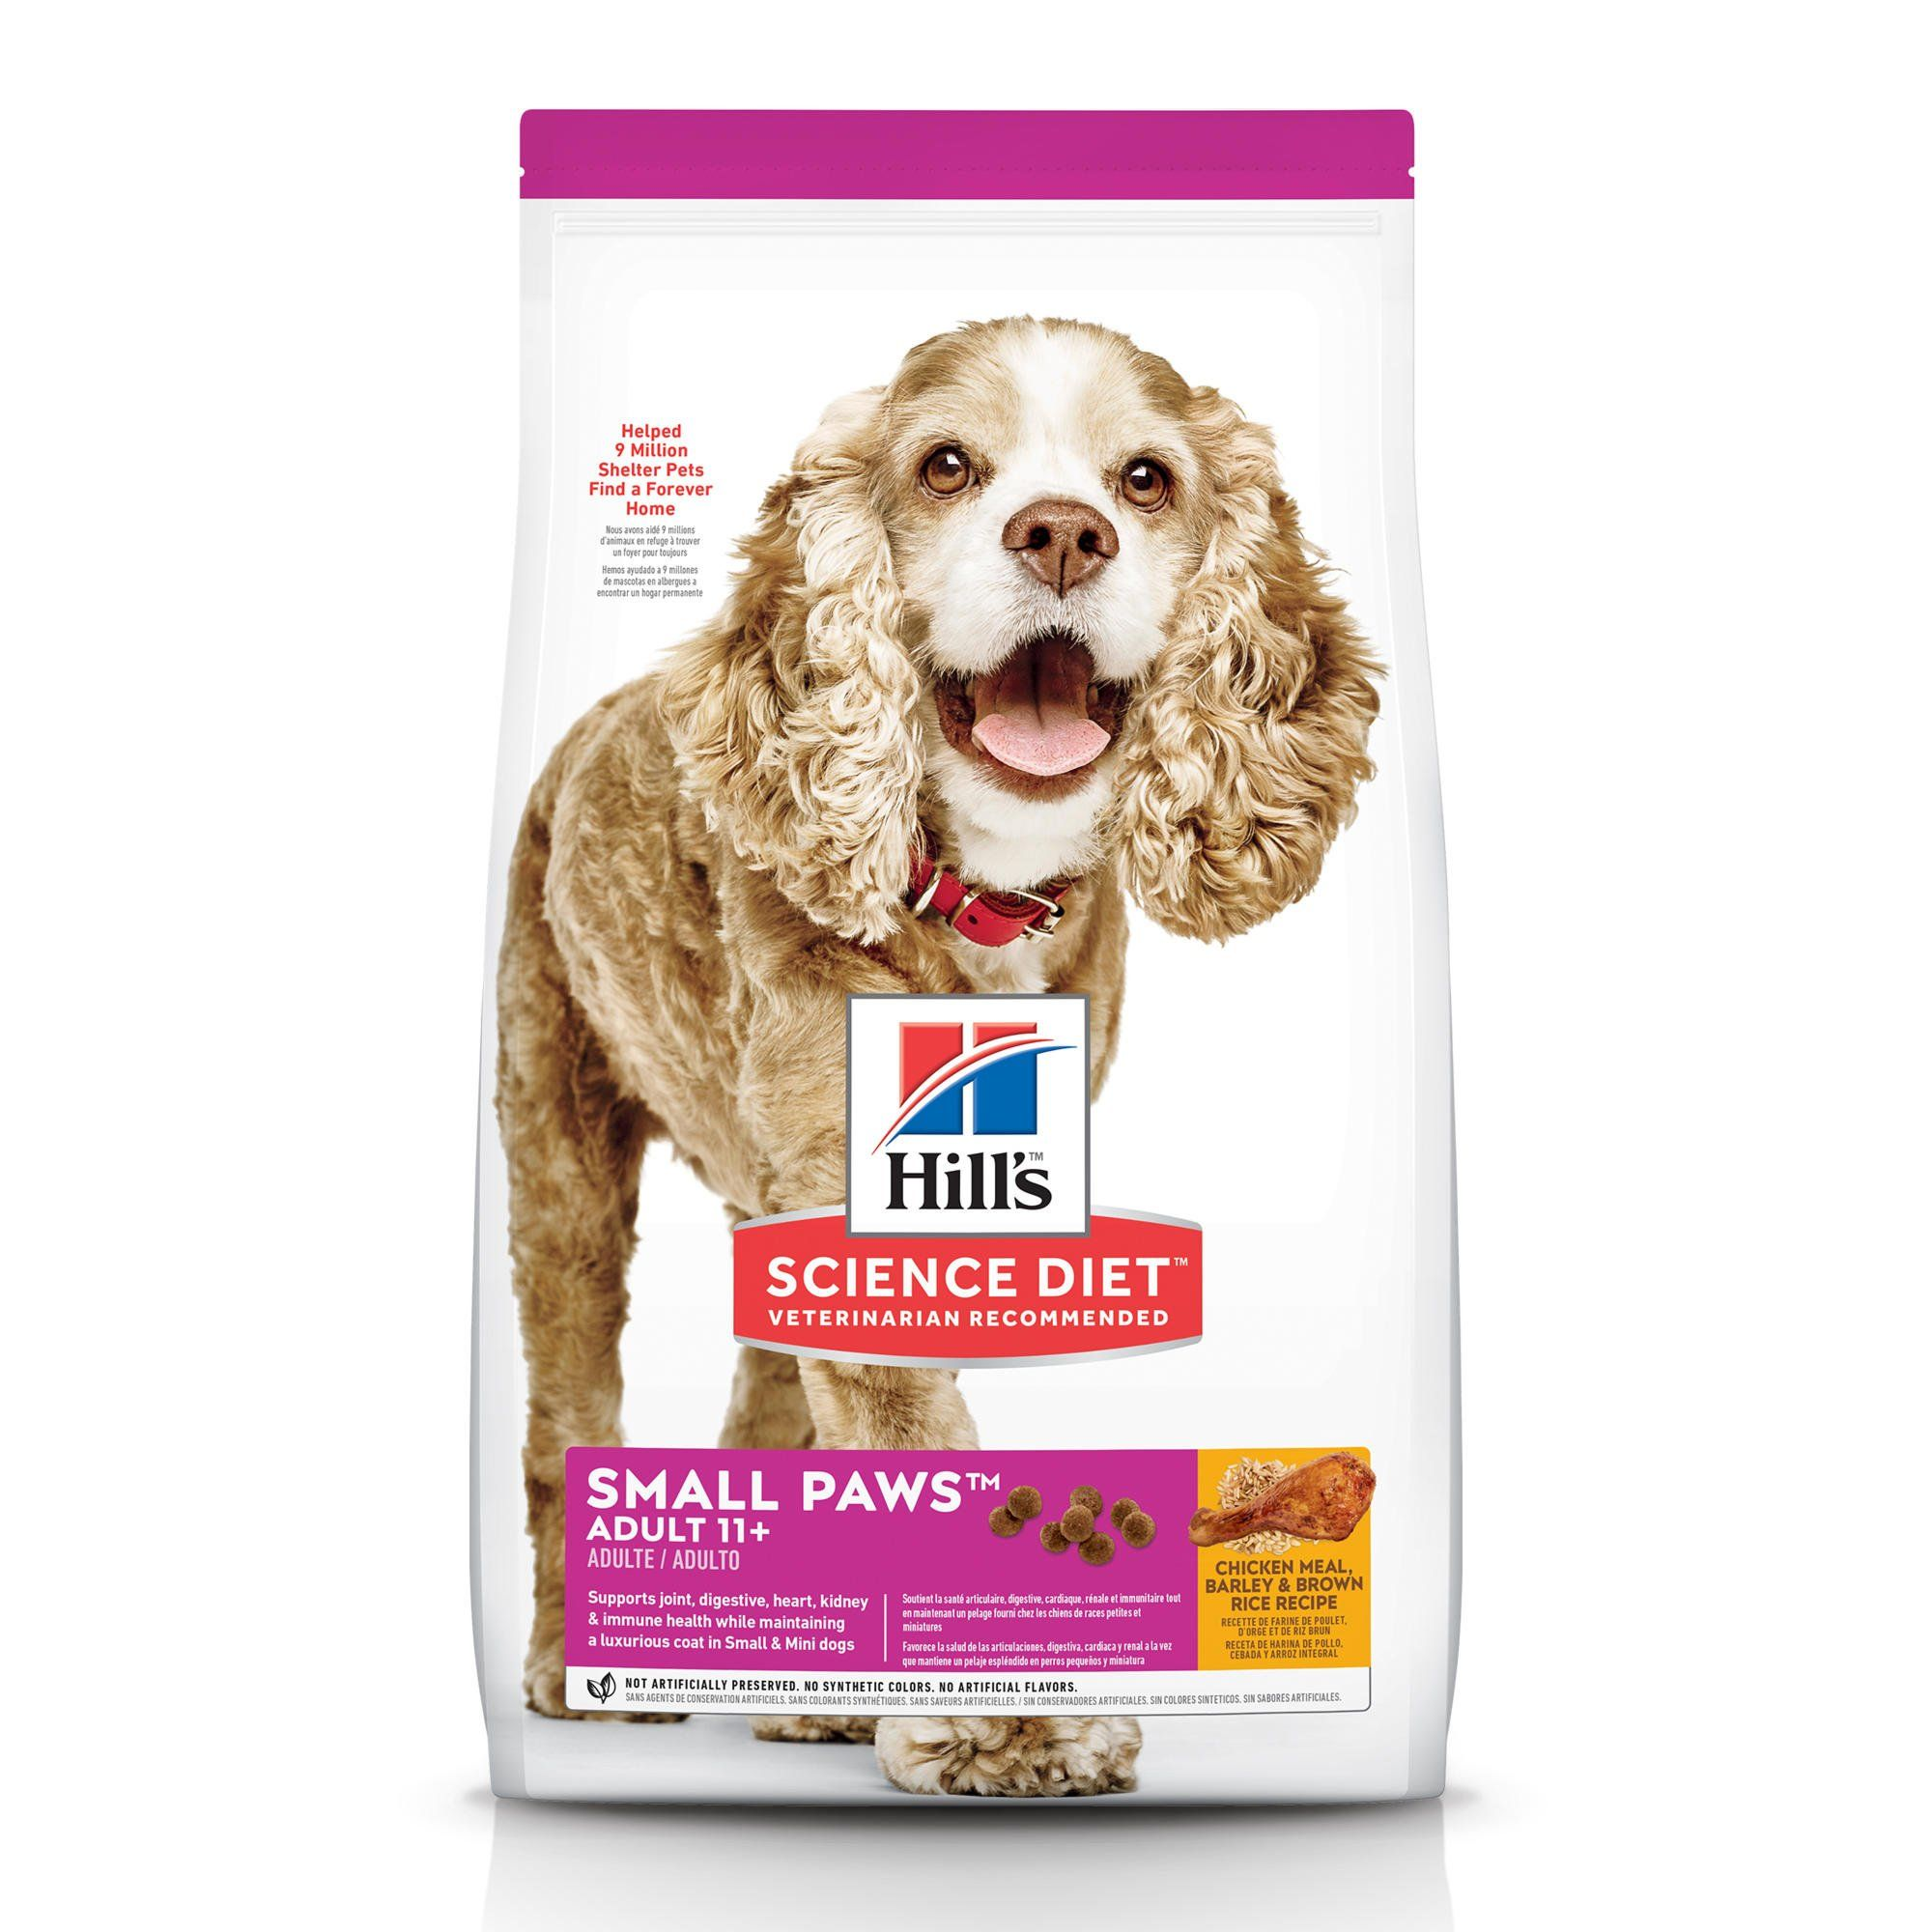 Hill S Science Diet Adult 11 Small Paws Chicken Meal Barley